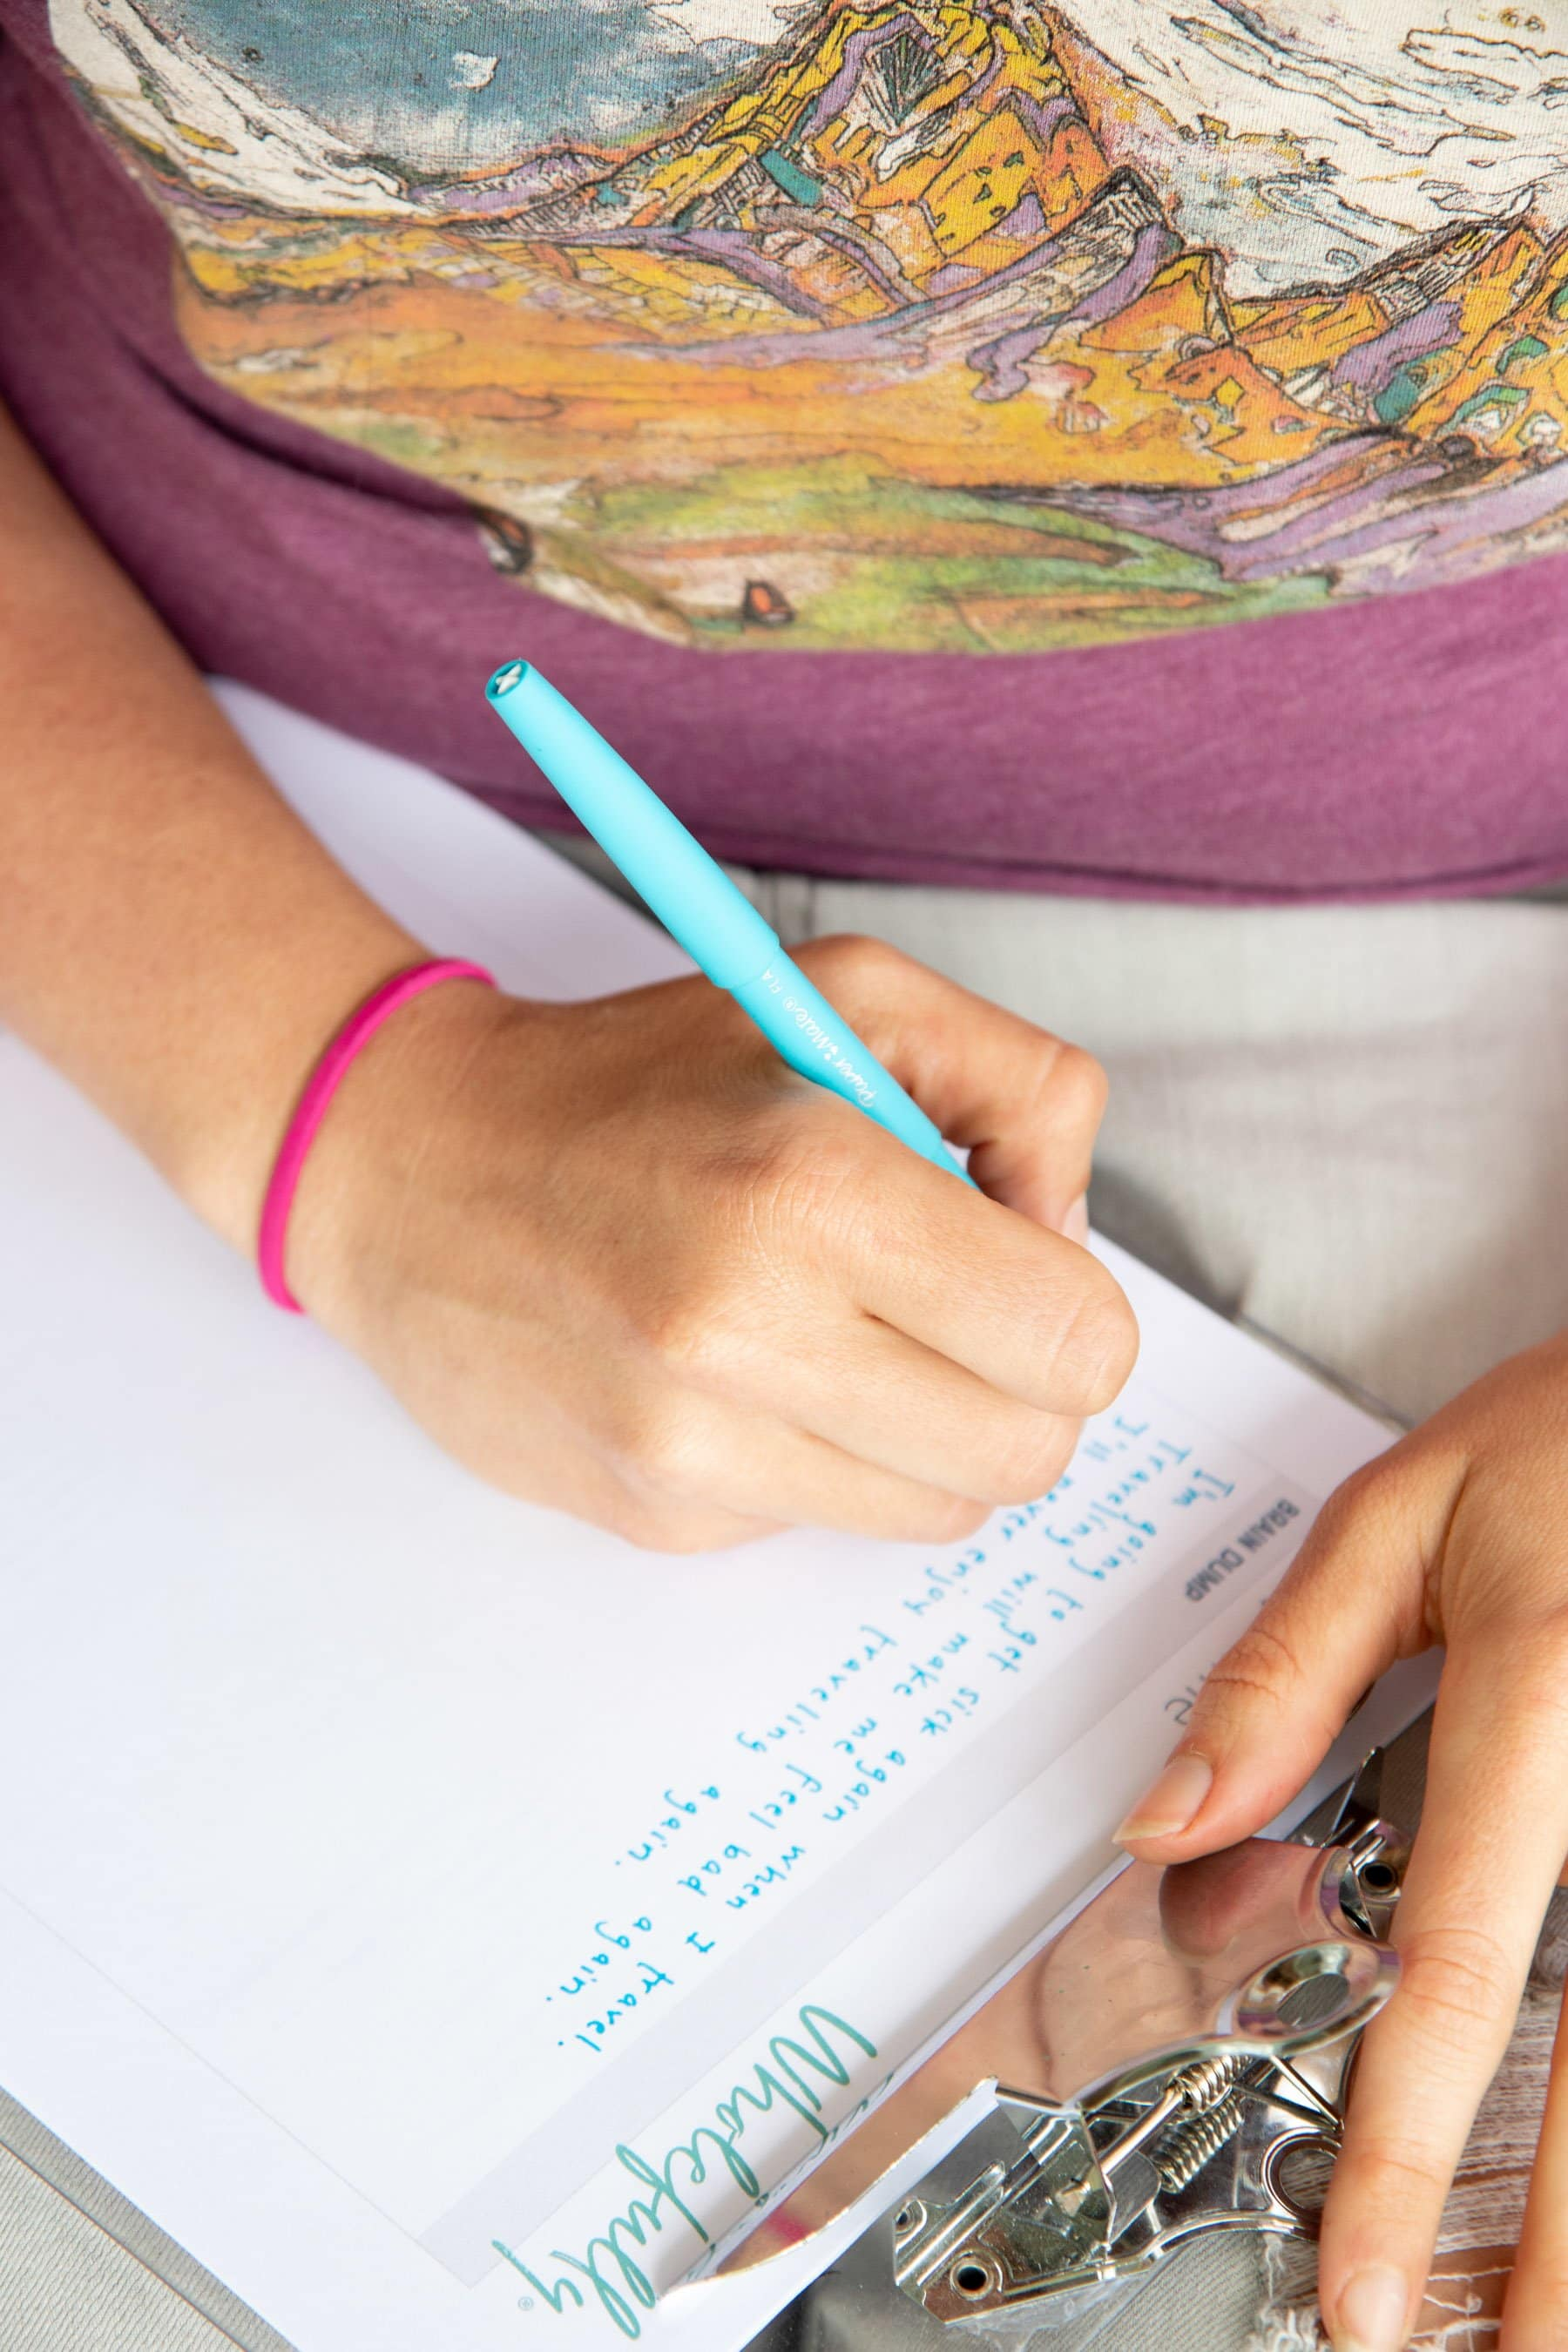 Hand holding a blue pen, writing on a sheet of paper.